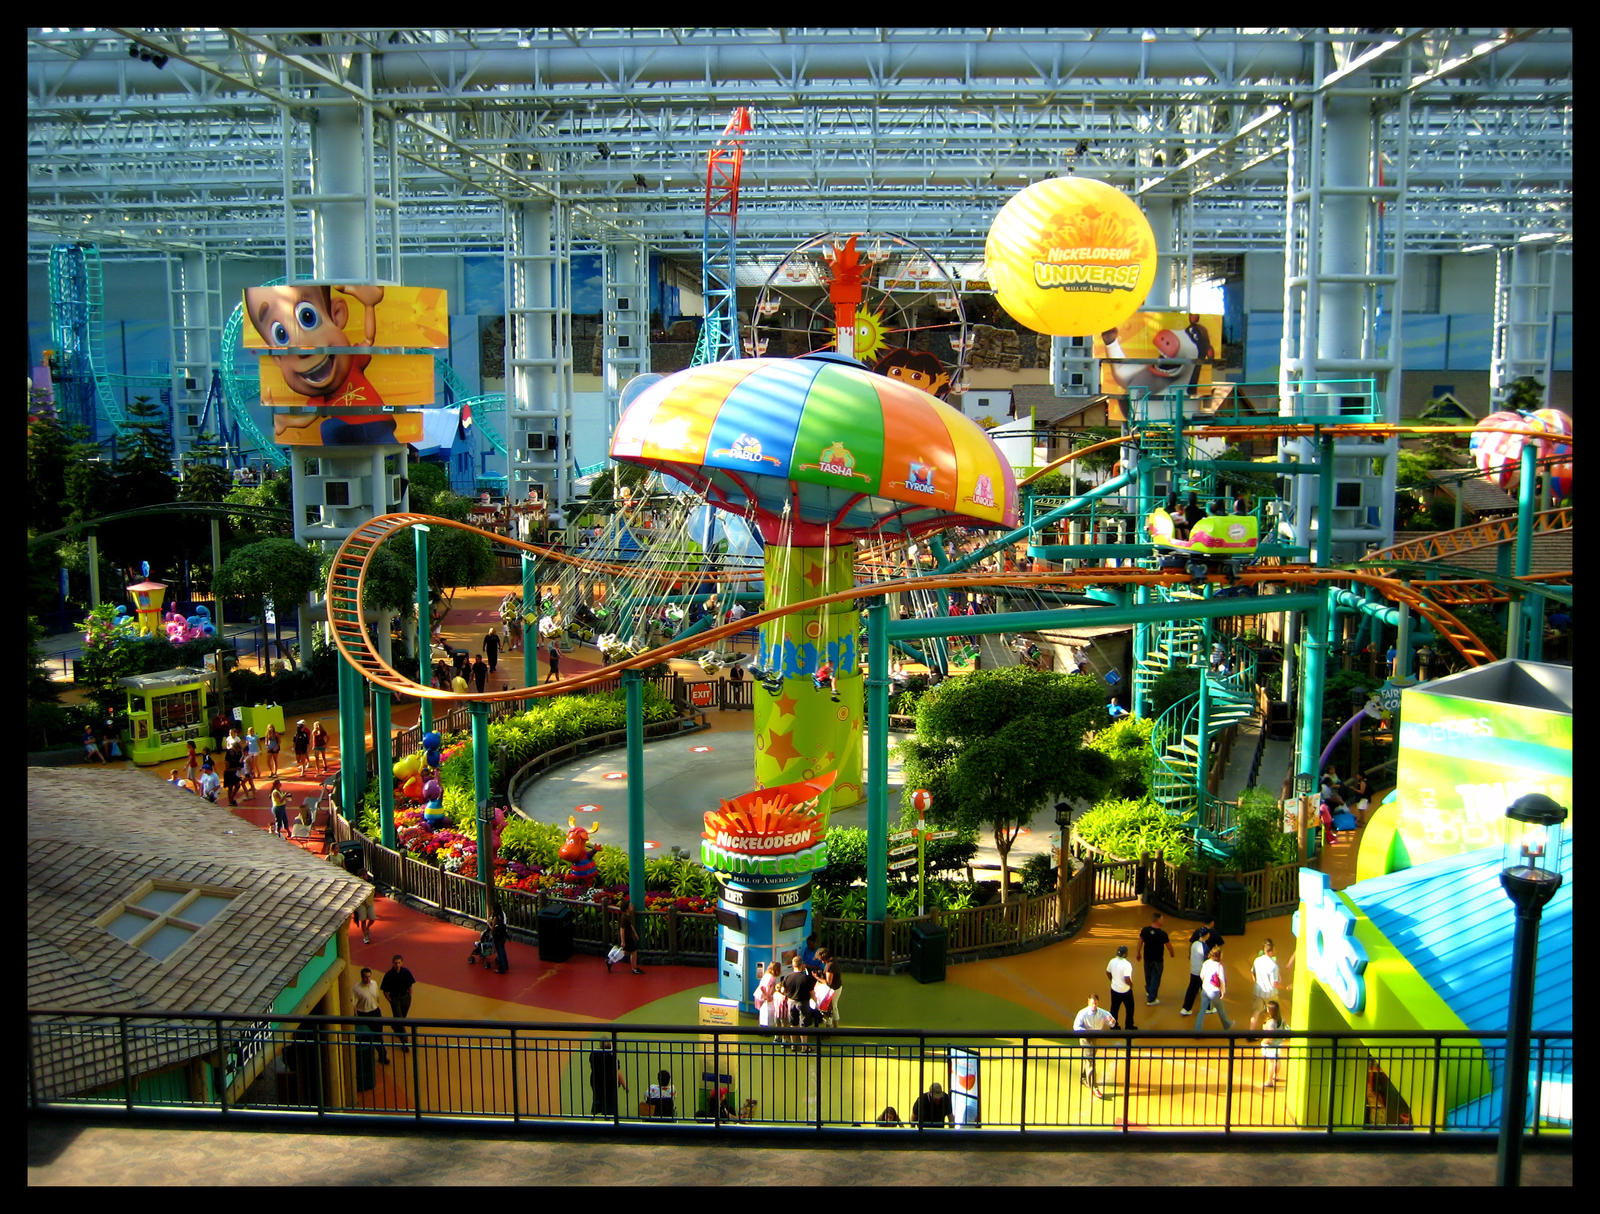 Dec 03,  · My children ages 7 and 4 had a blast at Nickelodeon Universe! They have multiple rides and activities for all ages. The lines seemed to be organized and move fast/5(K).